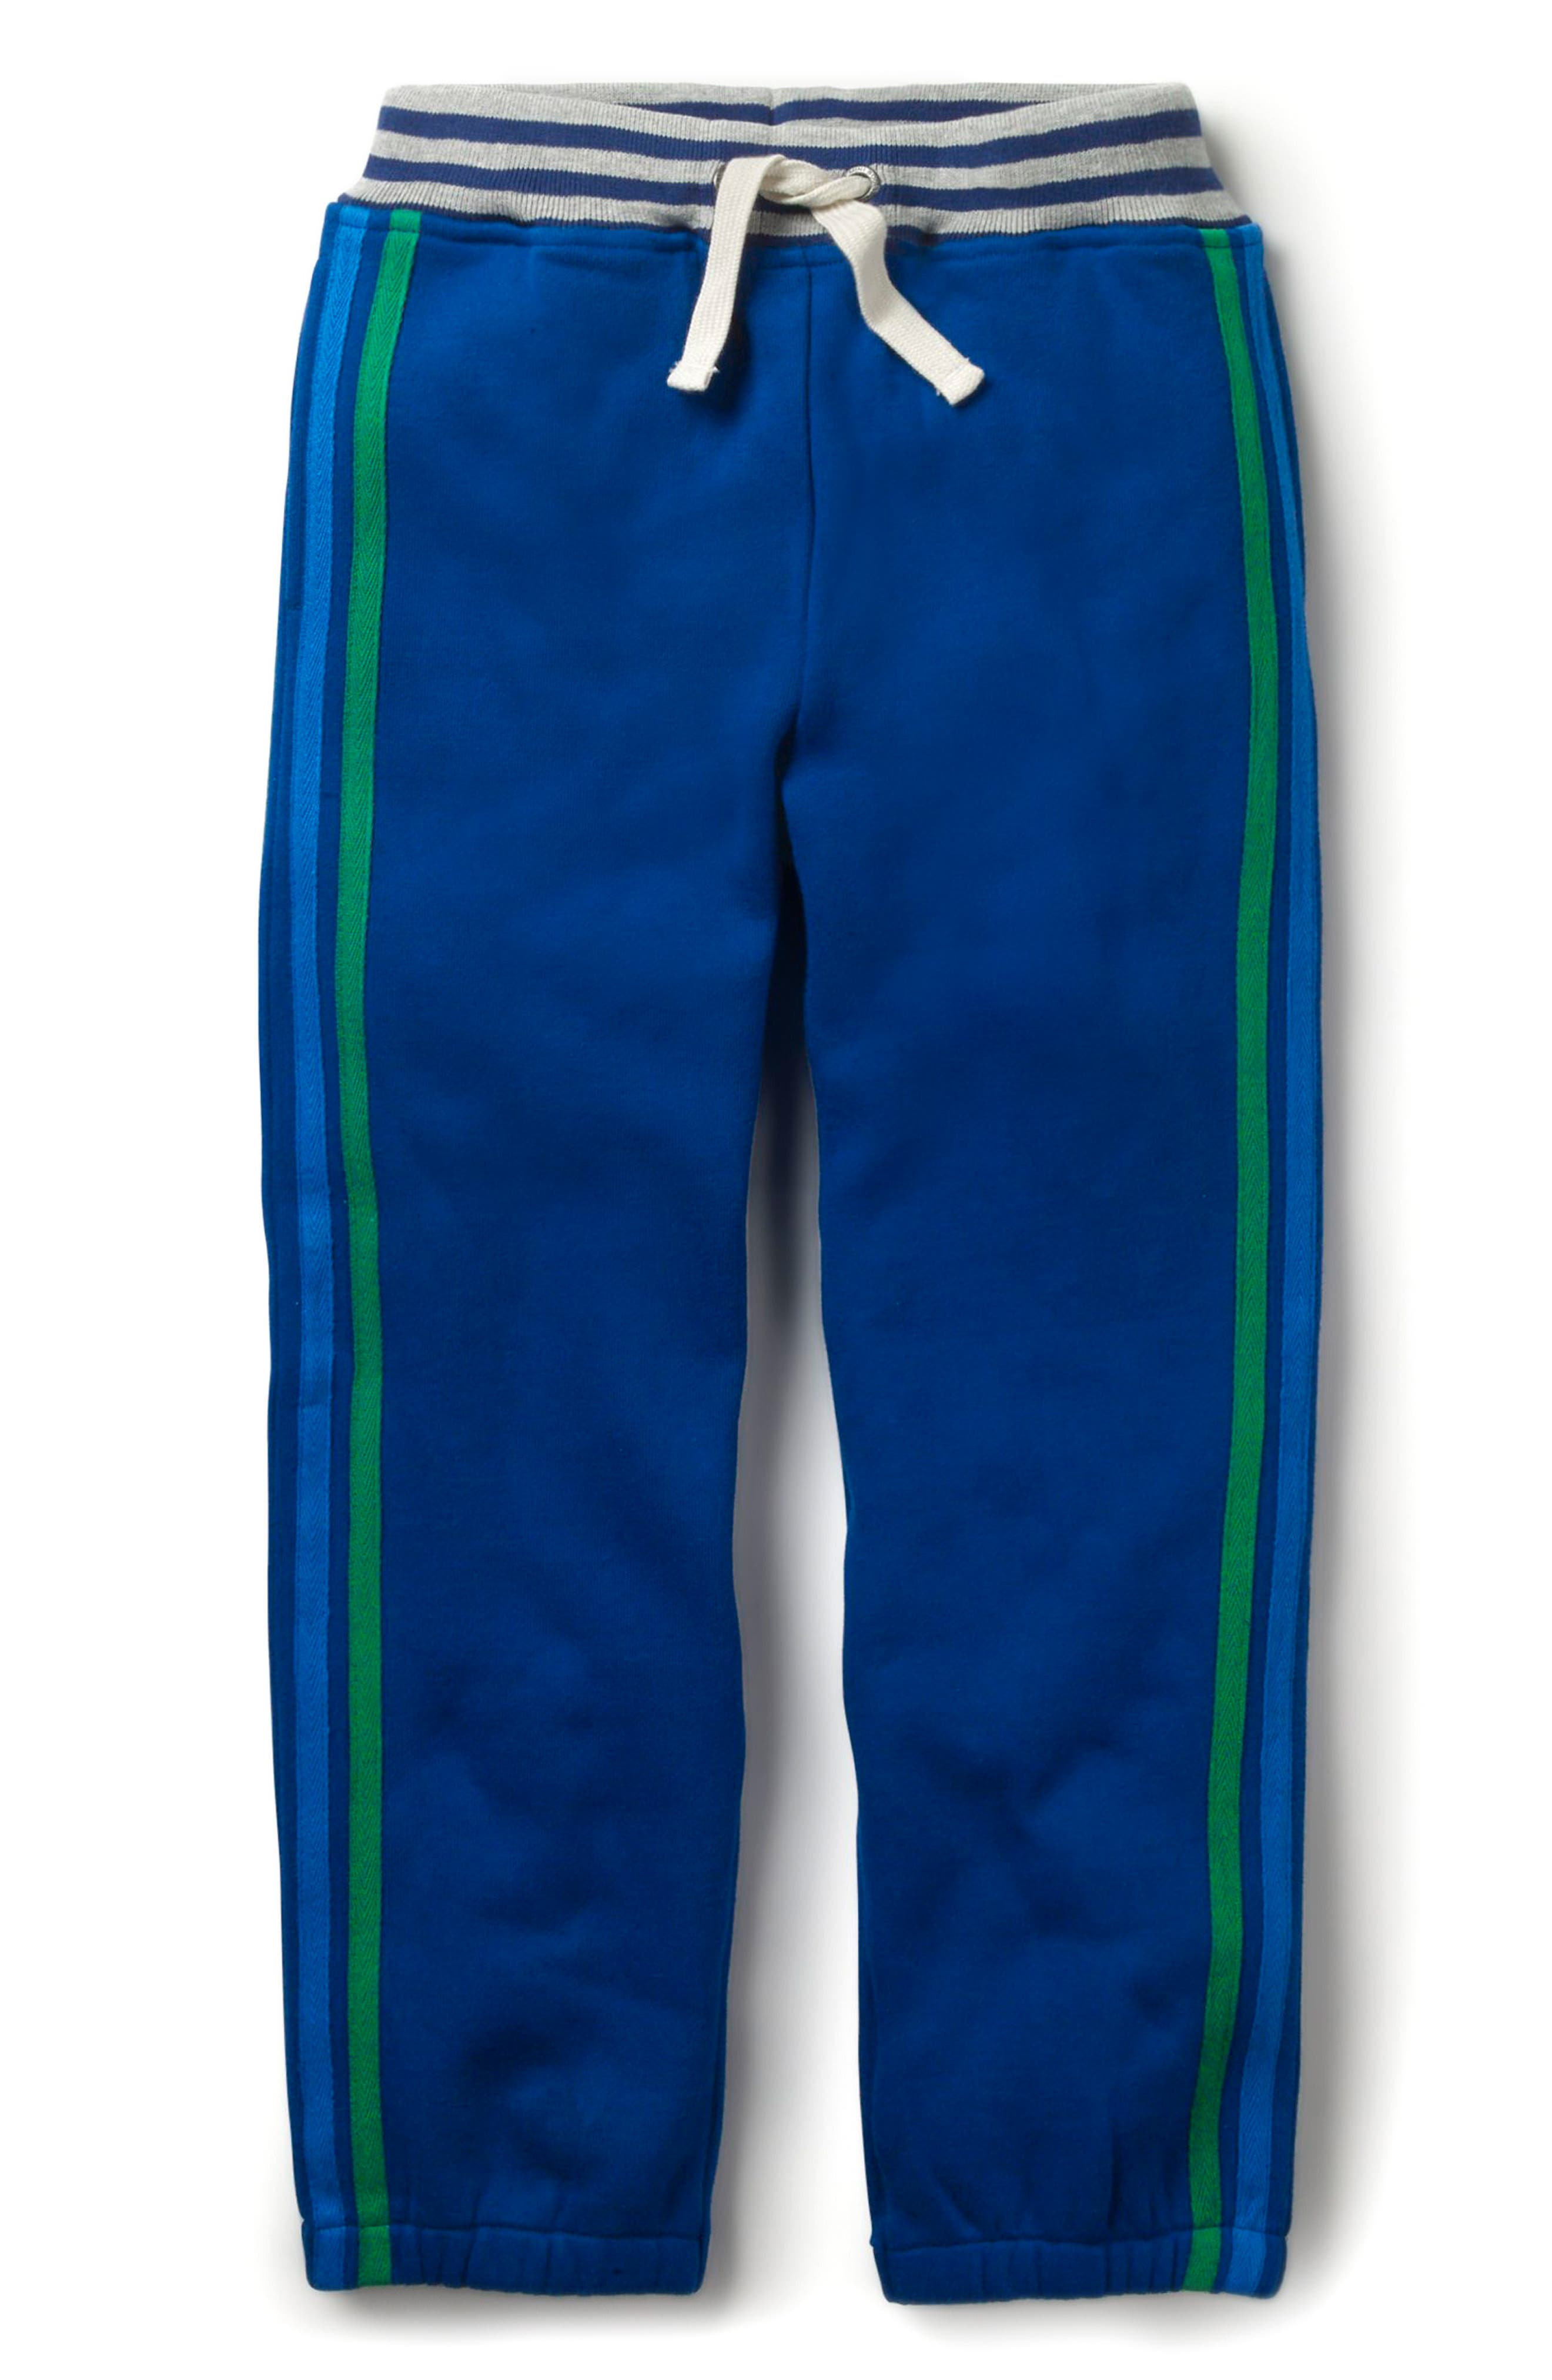 Alternate Image 1 Selected - Mini Boden Sweatpants (Toddler Boys, Little Boys & Big Boys)